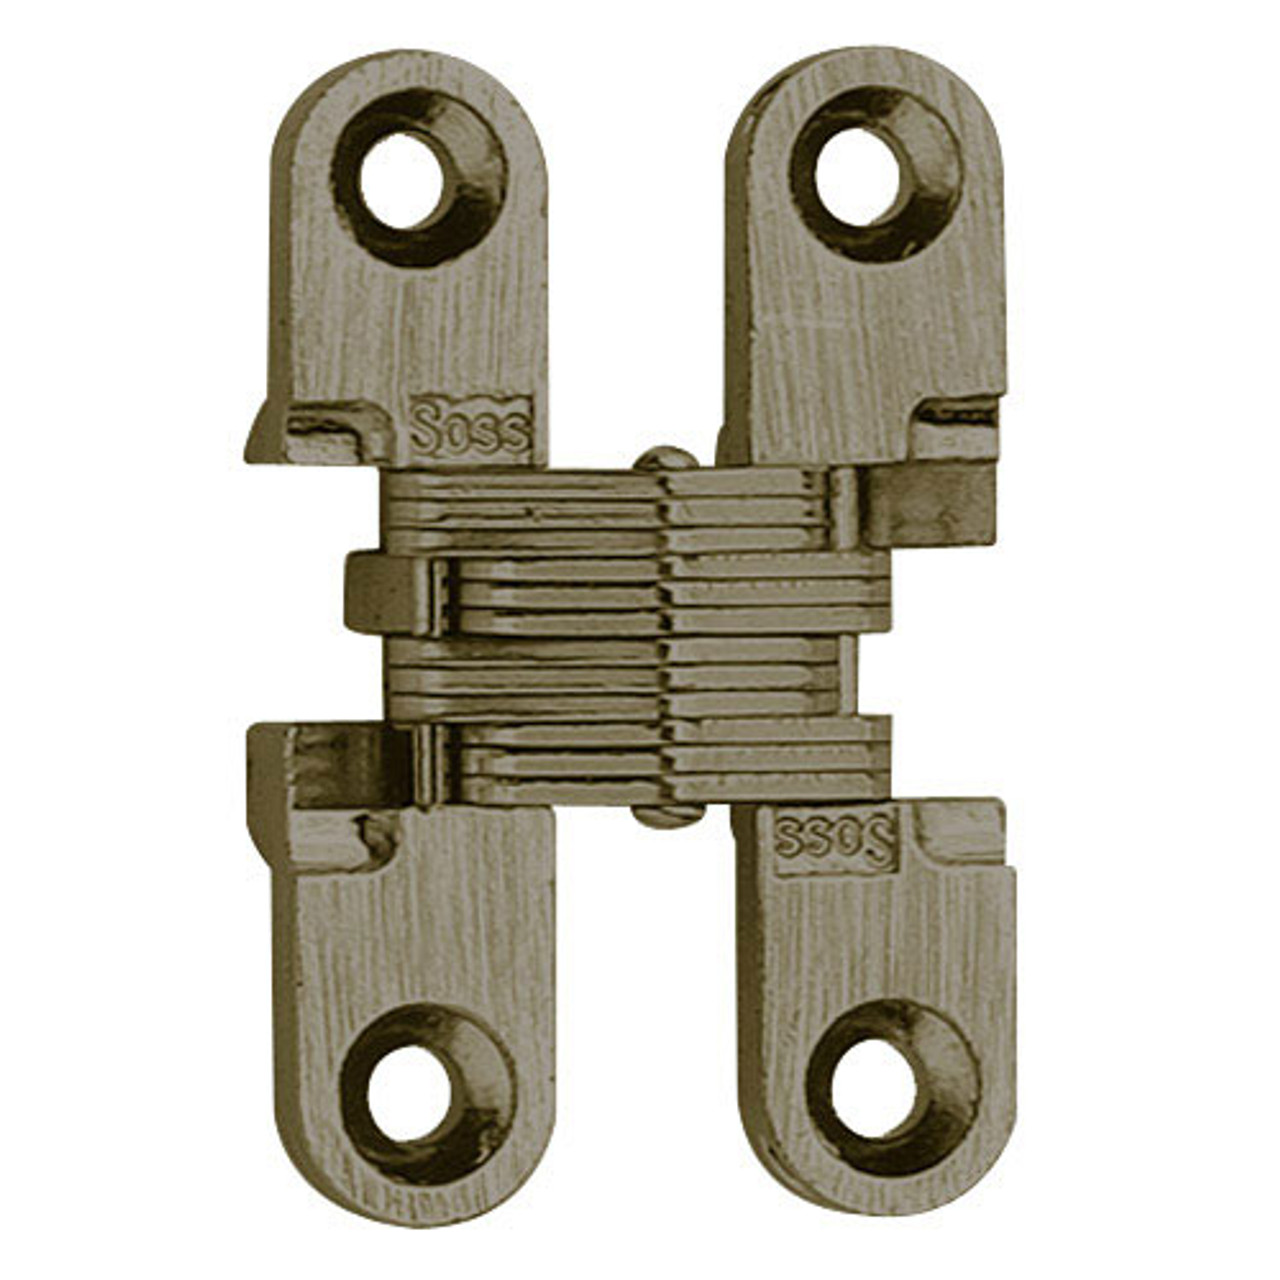 101C-US14 Soss Invisible Hinge in Bright Nickel Finish